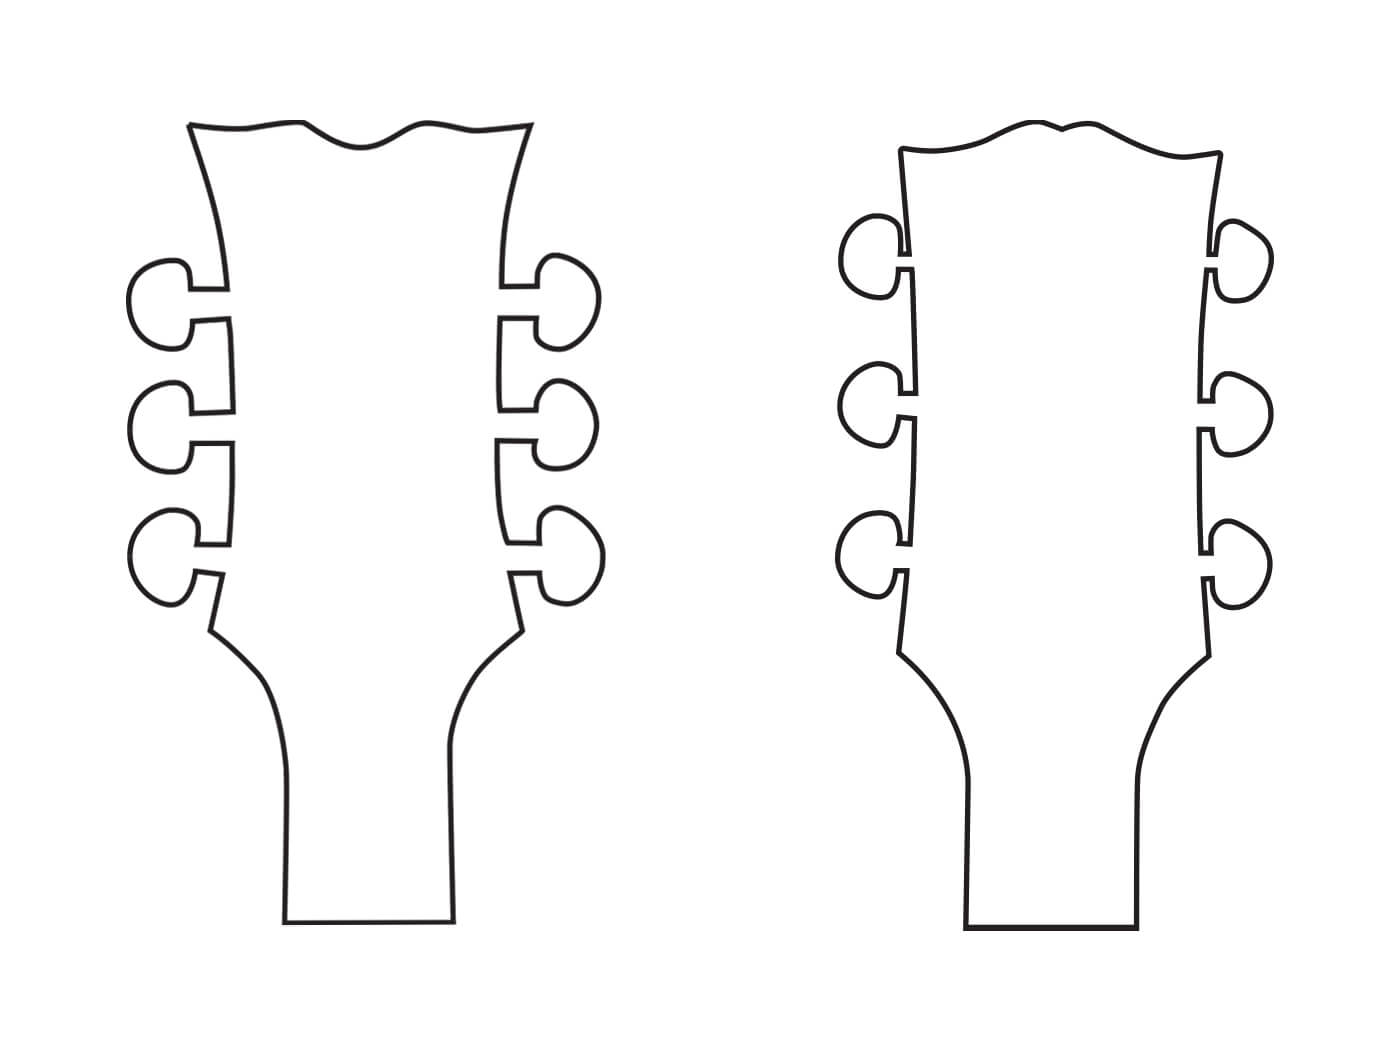 The Dean headstock design and Gibson headstock design